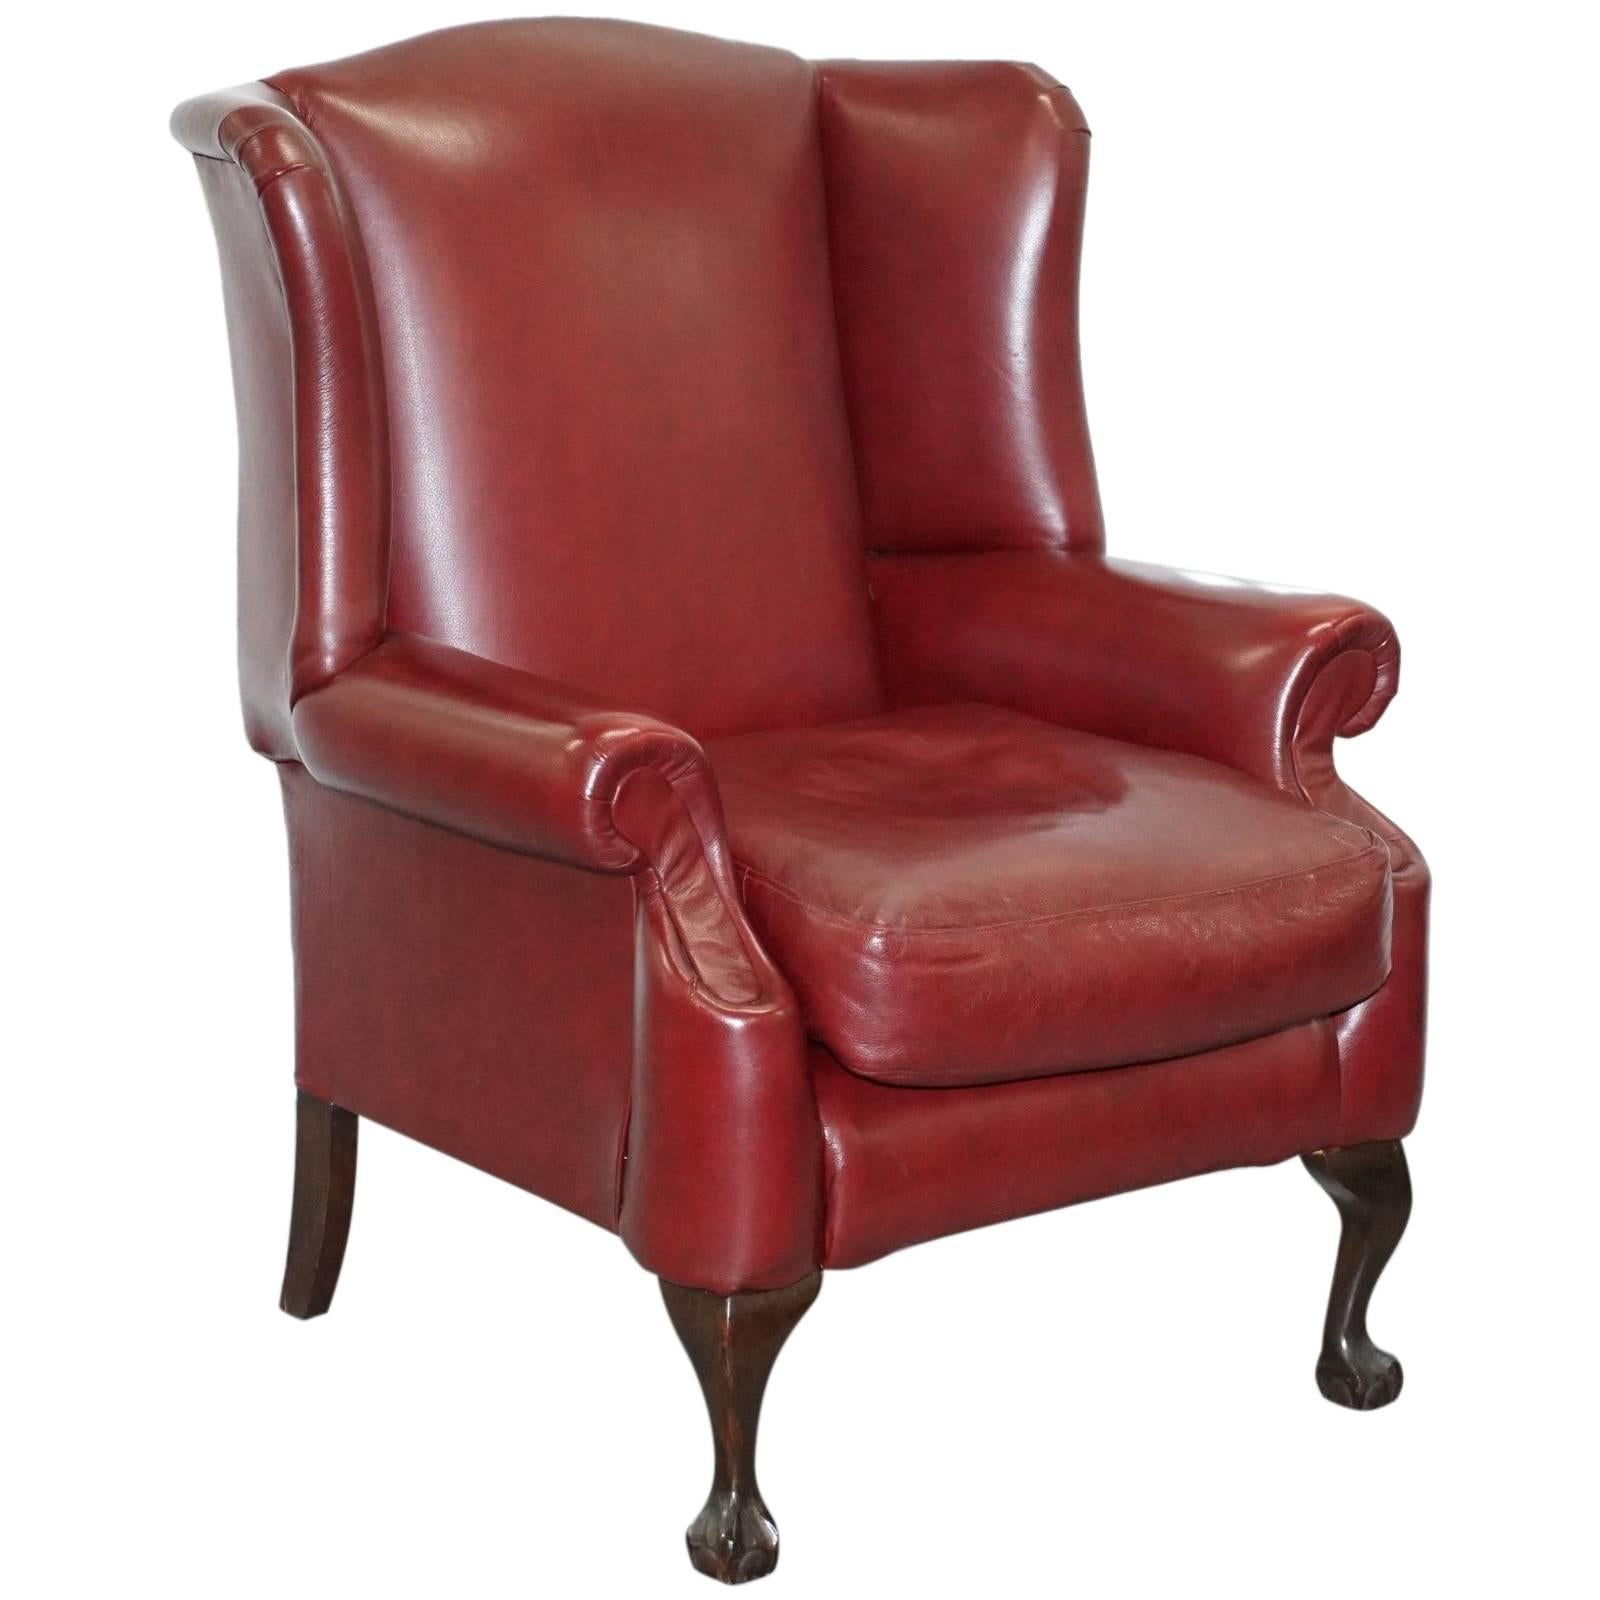 Superb Claw U0026 Ball Feet Large Comfortable Oxblood Leather Queen Anne Wingback  Armchair For Sale